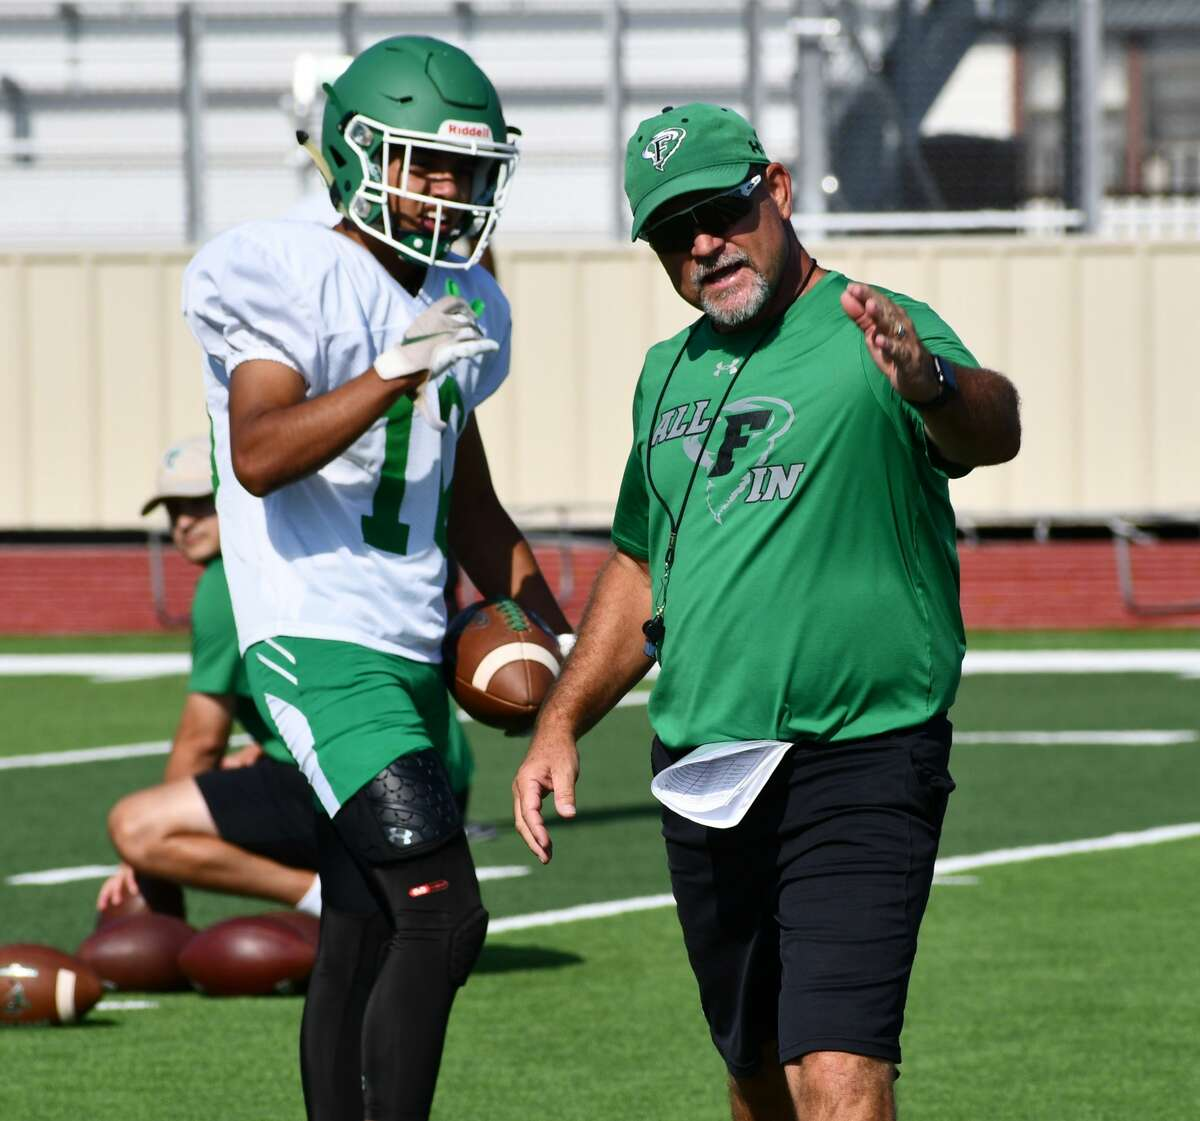 Scotty Bruington has resigned as head coach of the Floydada football team after three years leading the Whirlwinds.